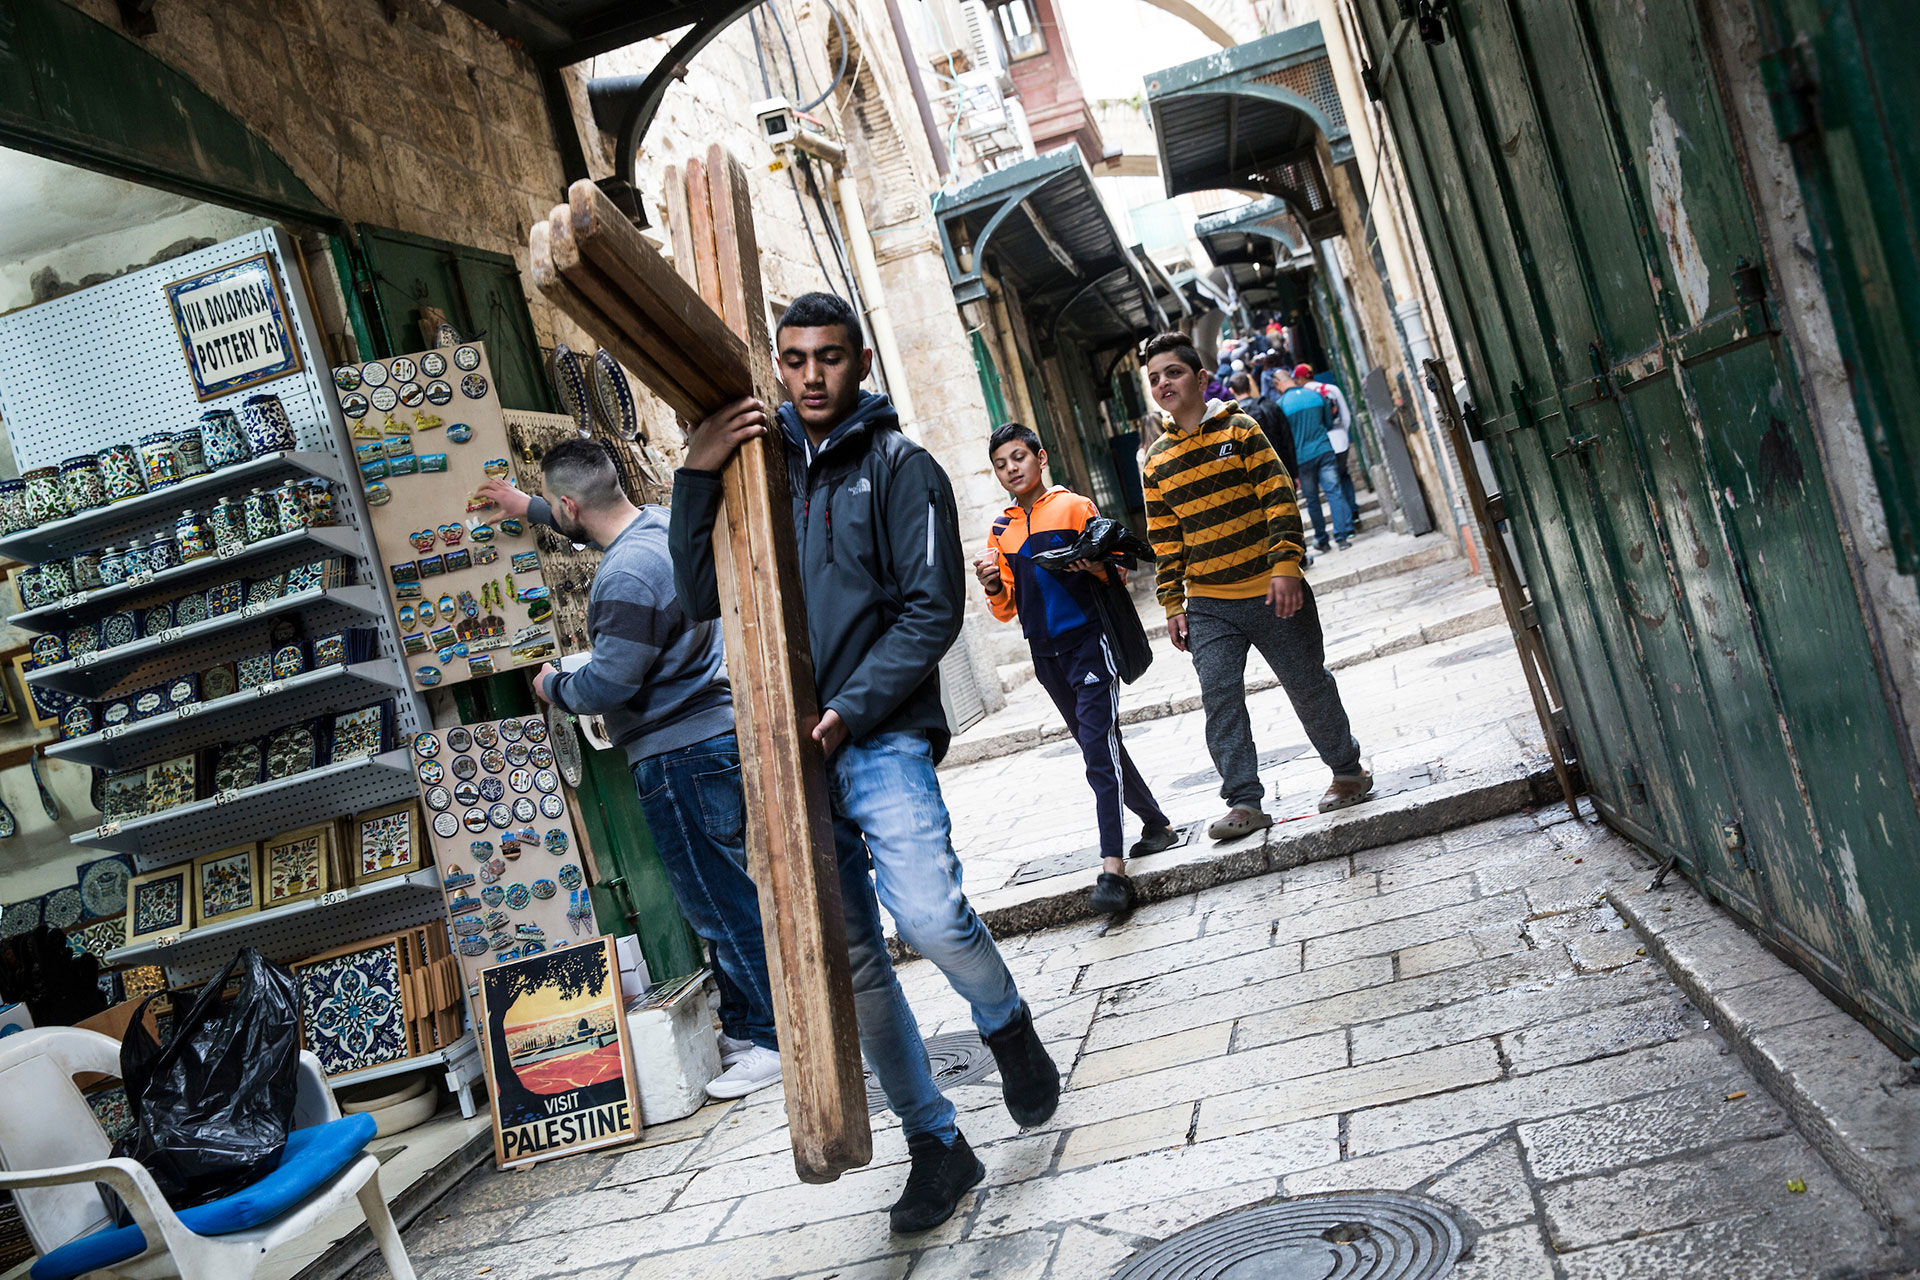 A Palestinian walks carries wooden crosses along the Via Dolorosa for the Christian worshipers during the Good Friday procession in Jerusalem's Old City on March 30,2018.(Photo by Heidi Levine for The GroundTruth Project)